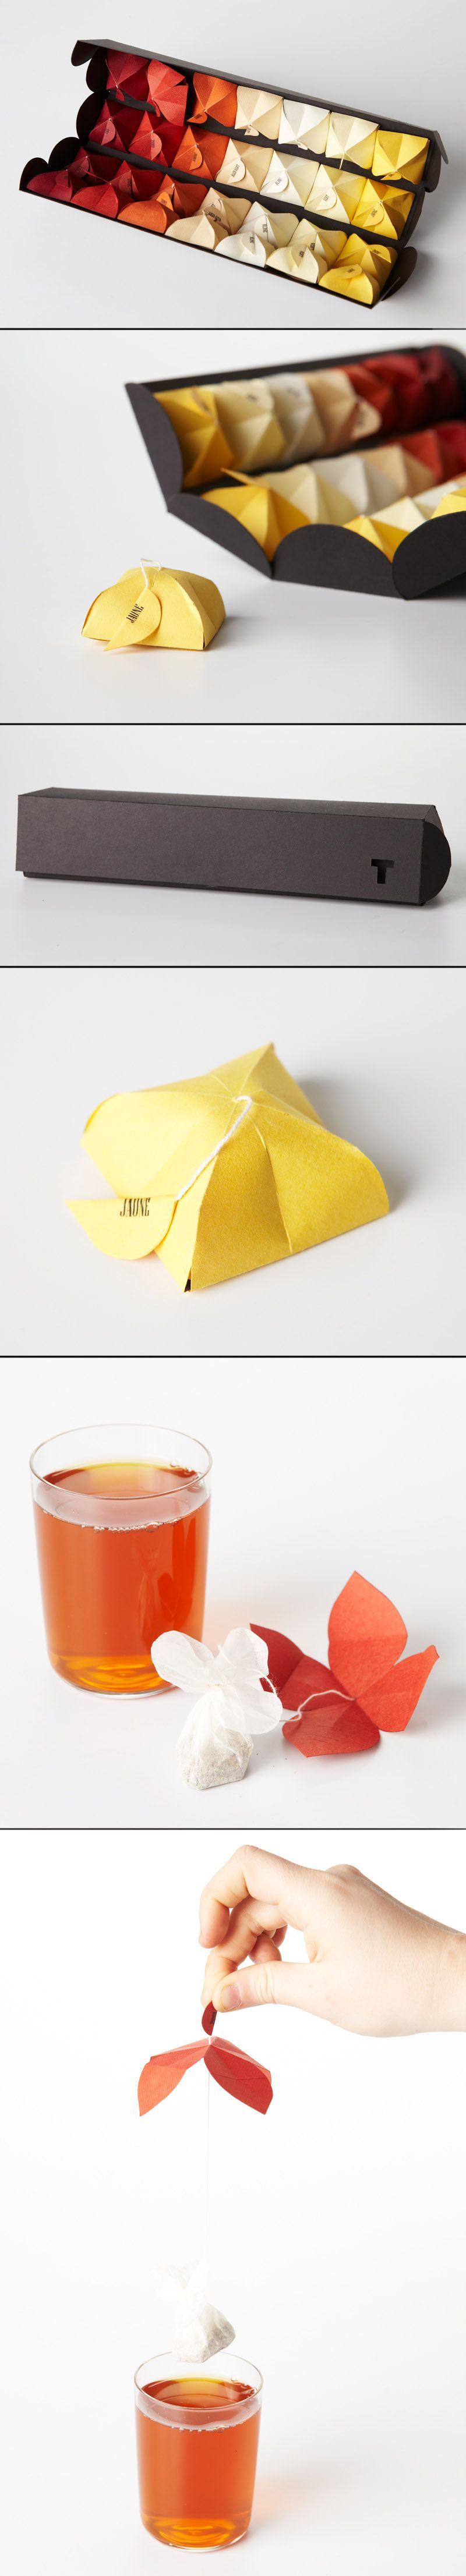 Maria Milagros Rodriguez Bouroncle - tea packaging